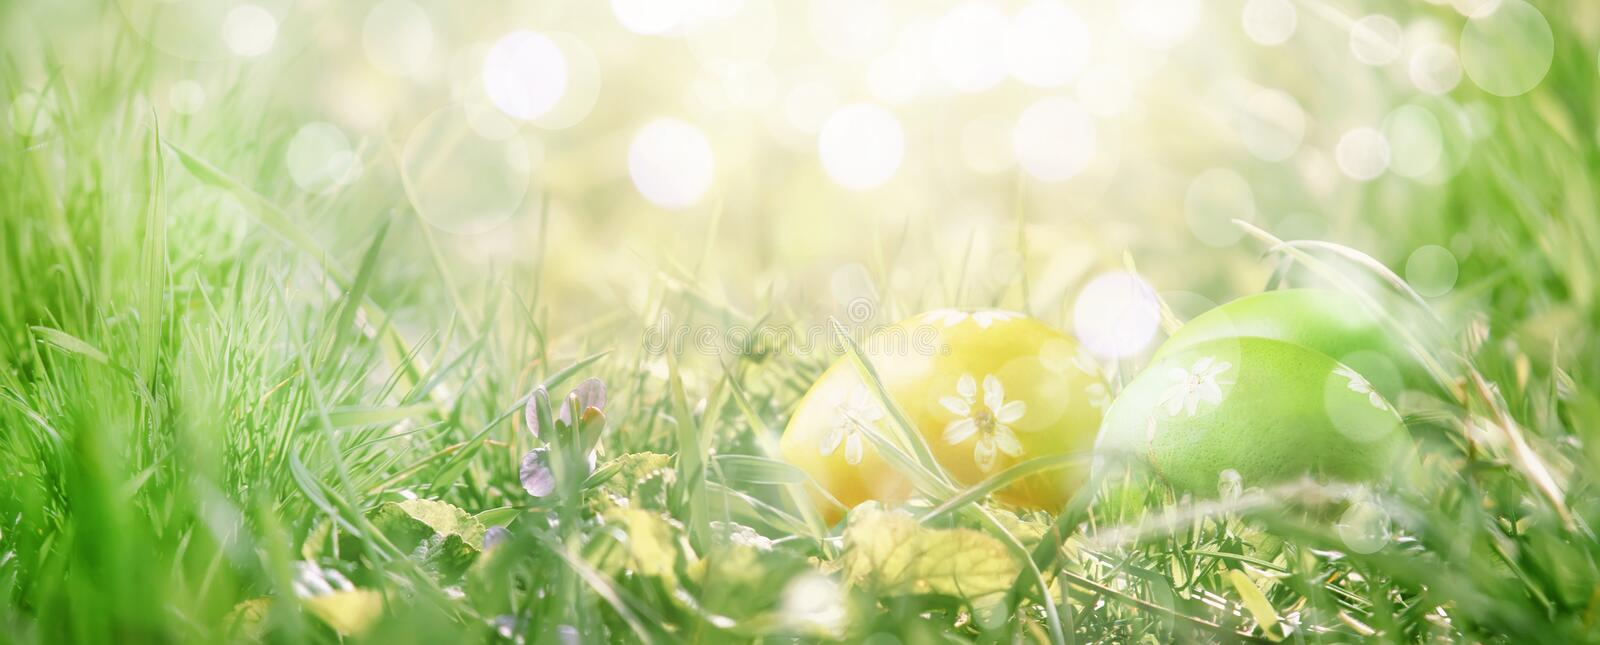 Easter eggs in green grass, spring nature border background with place for text, banner royalty free stock photography